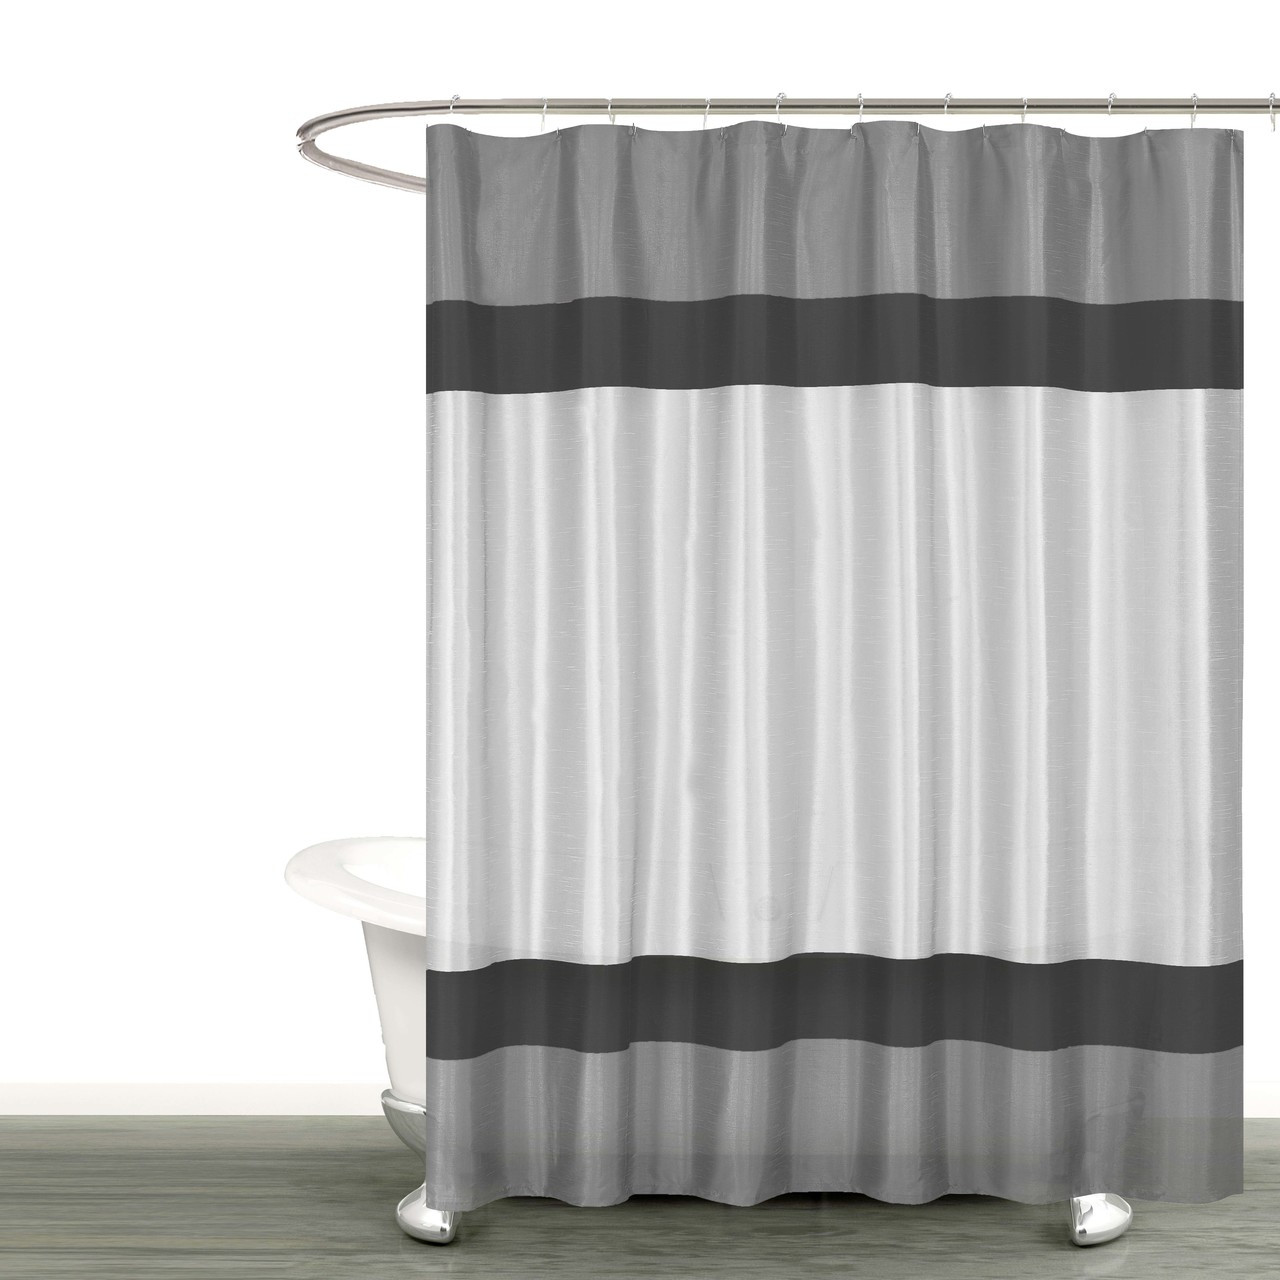 Gray Silver And Black Fabric Shower Curtain With Stripe Design Bathroom And More Collection 72 W X 72 Long Standard